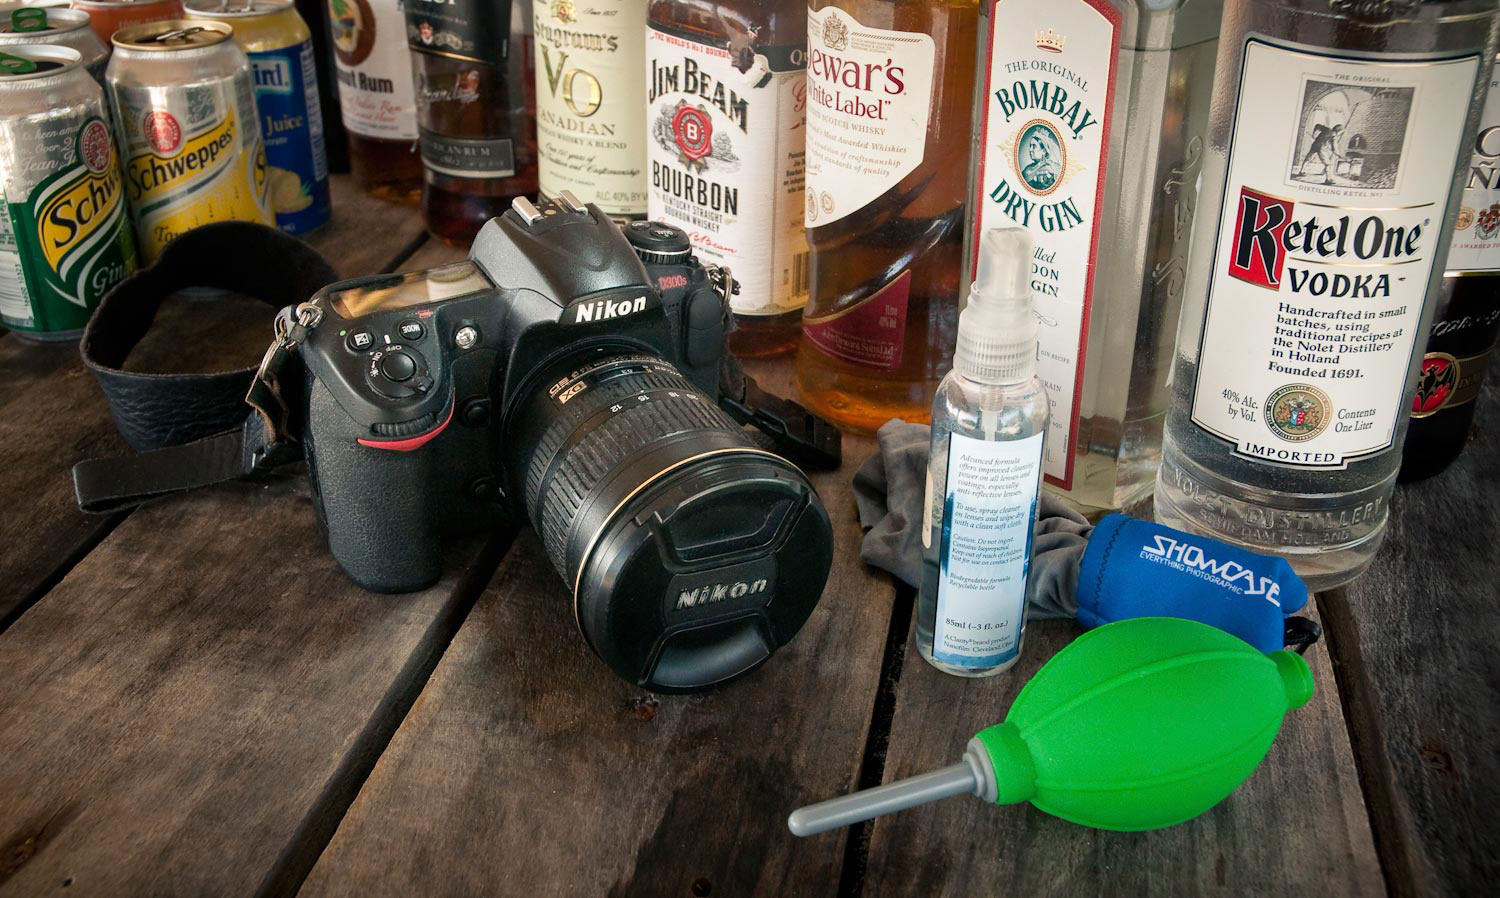 Camera Cleaning Kit (liquor not included)